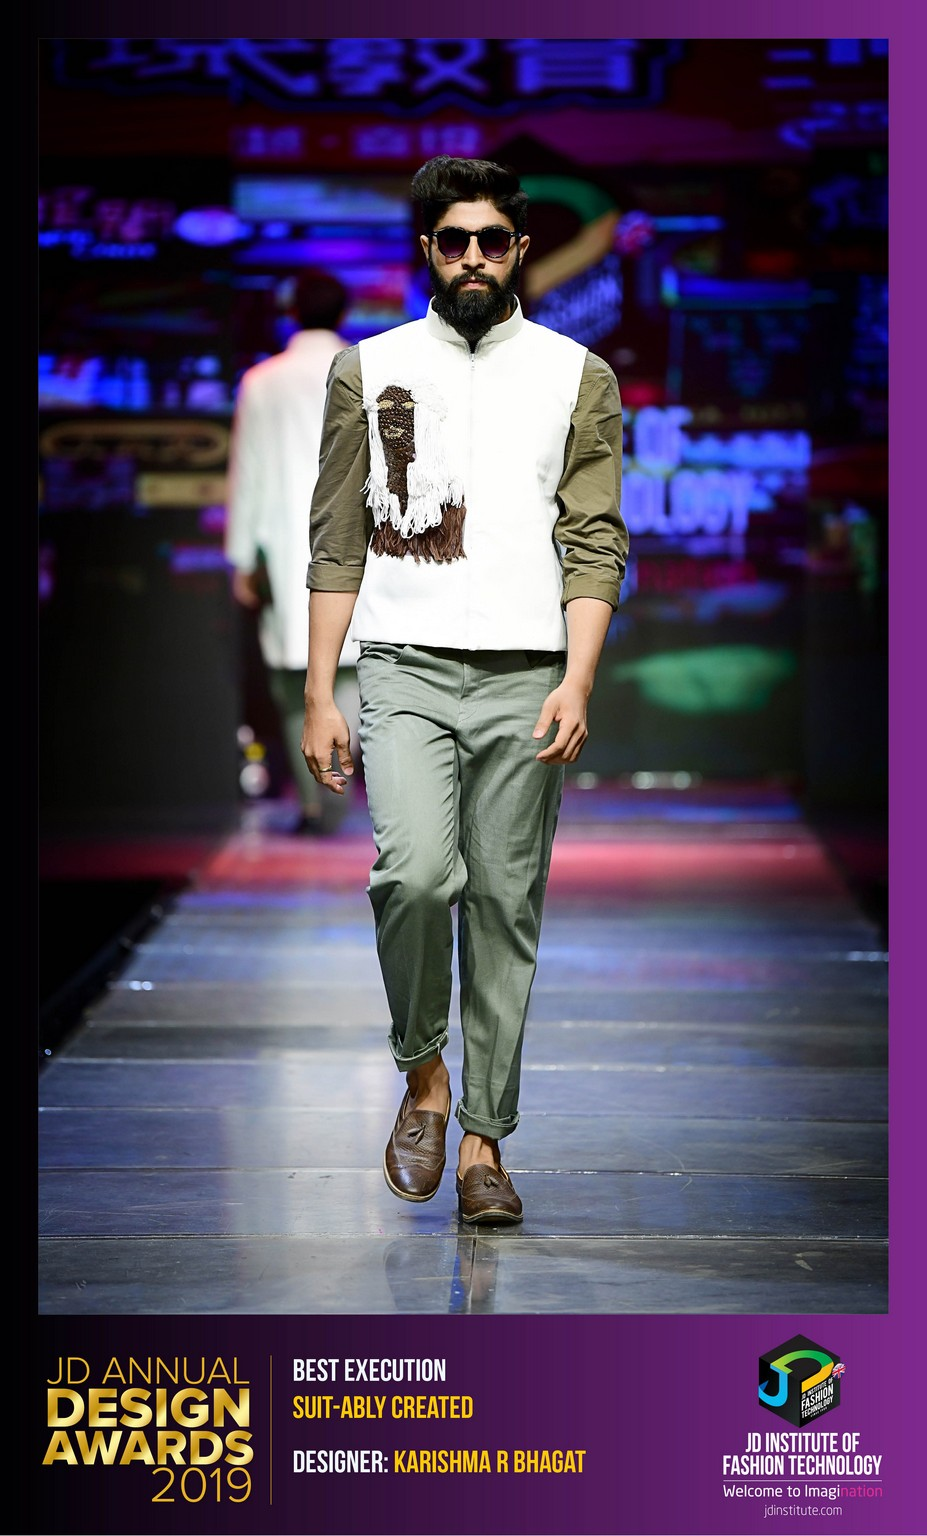 SUIT-ABLY CREATED - CURATOR - JDADA2019 suit-ably created - SUIT ABLY CREATED 7 1 - SUIT-ABLY CREATED – CURATOR – JDADA2019